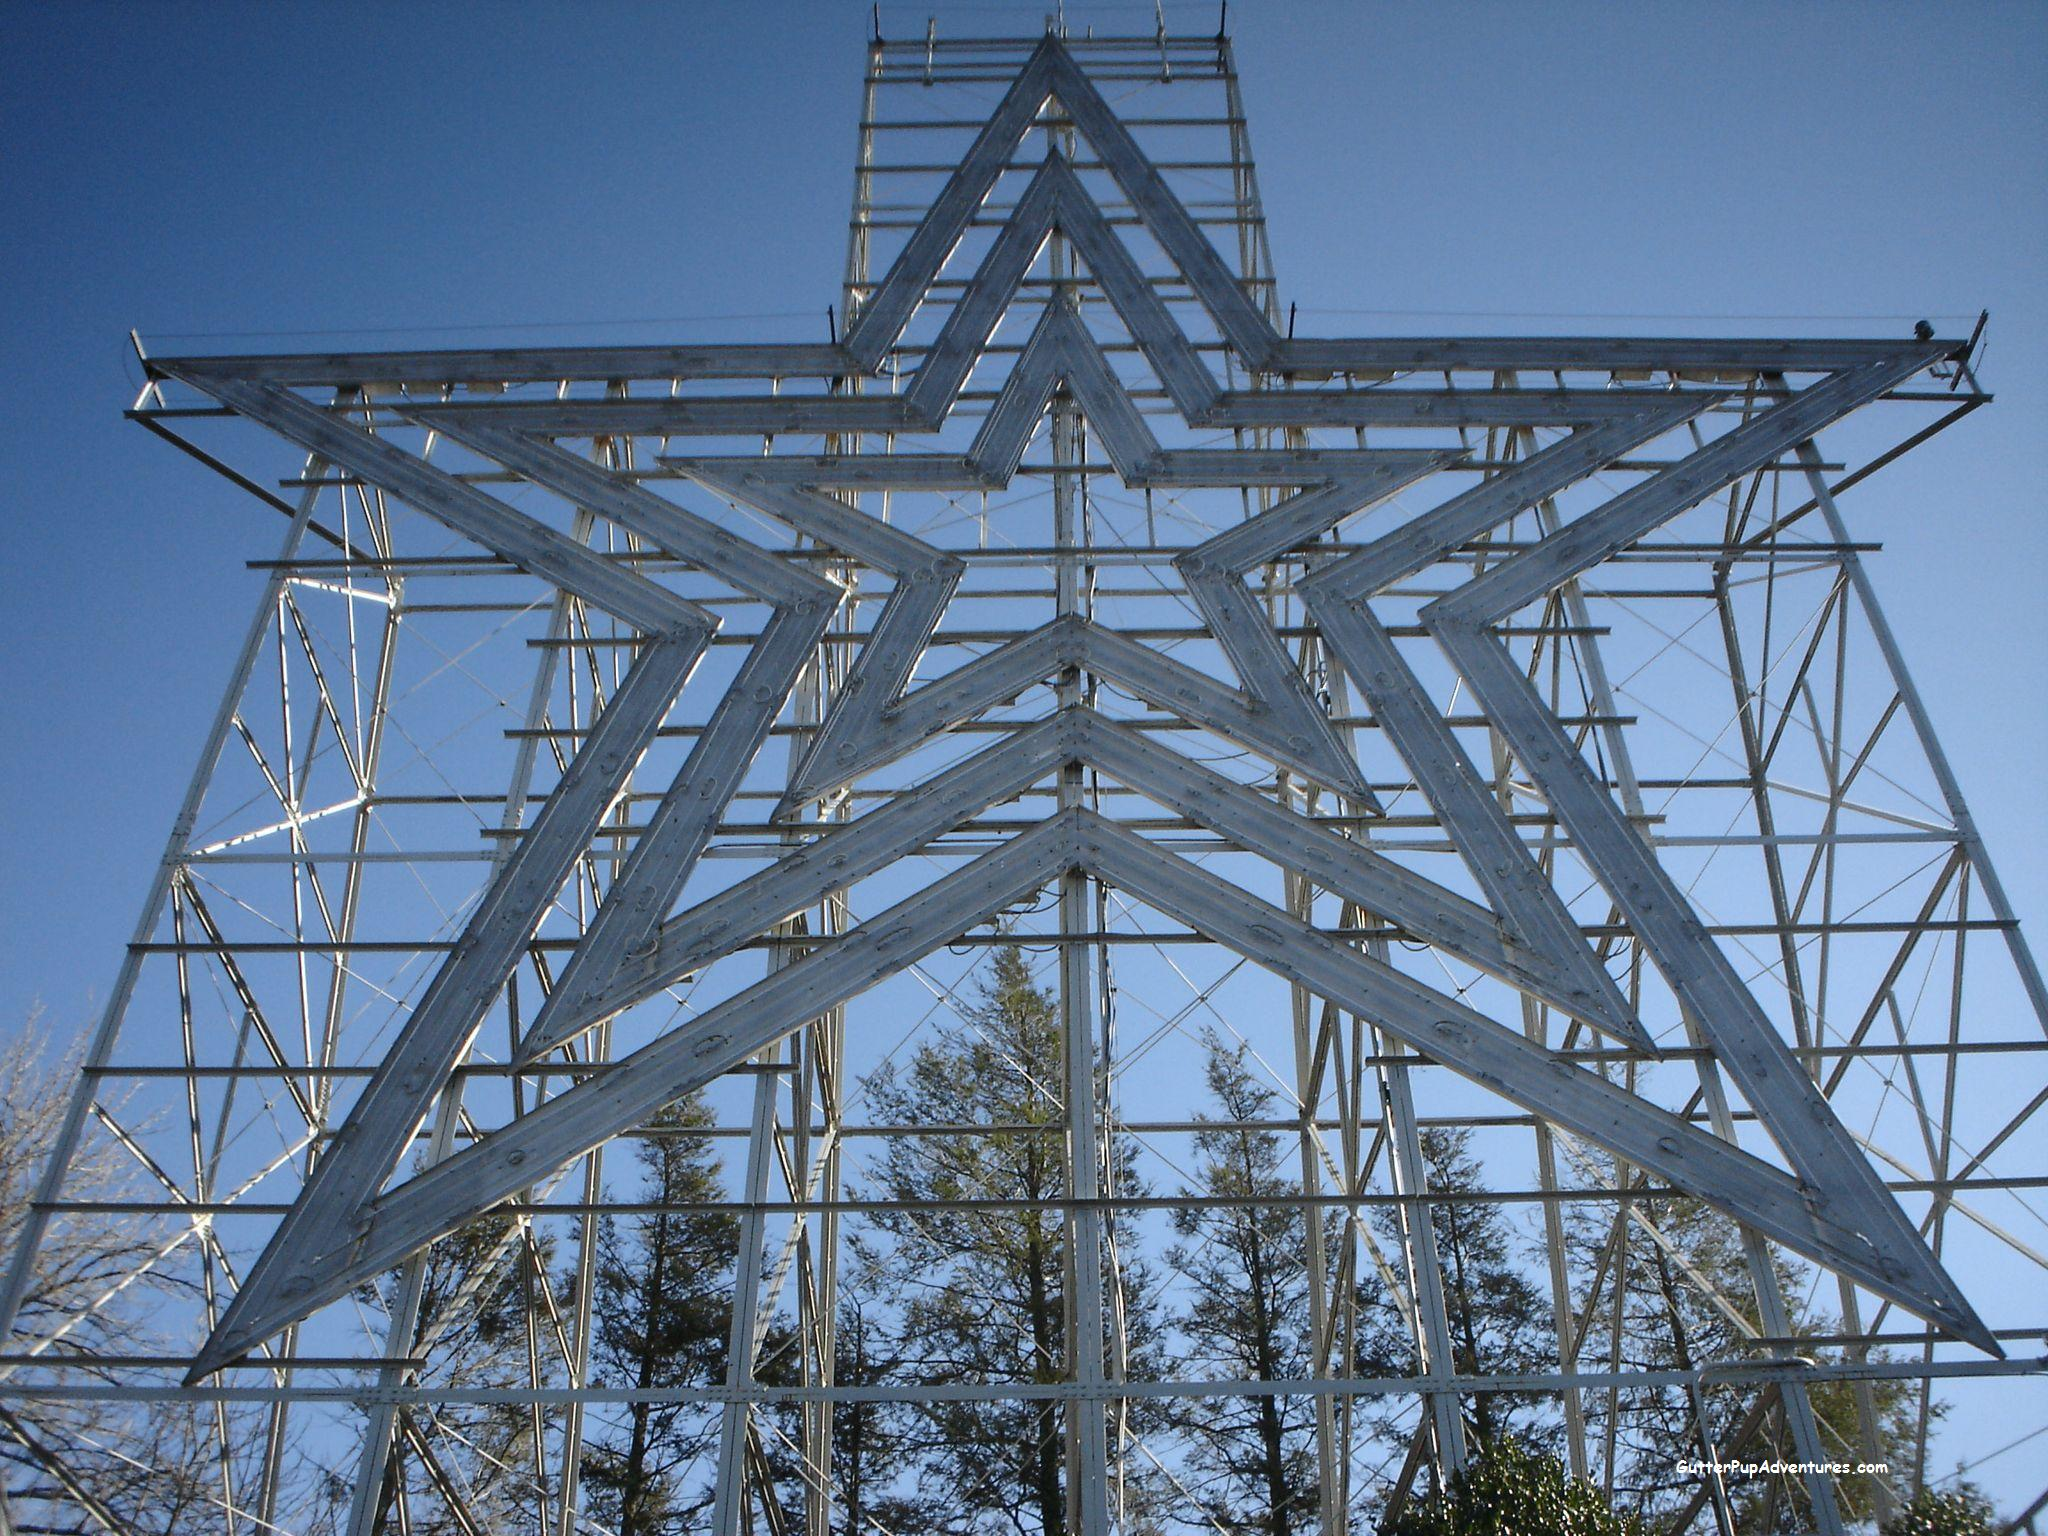 The Roanoke Star.